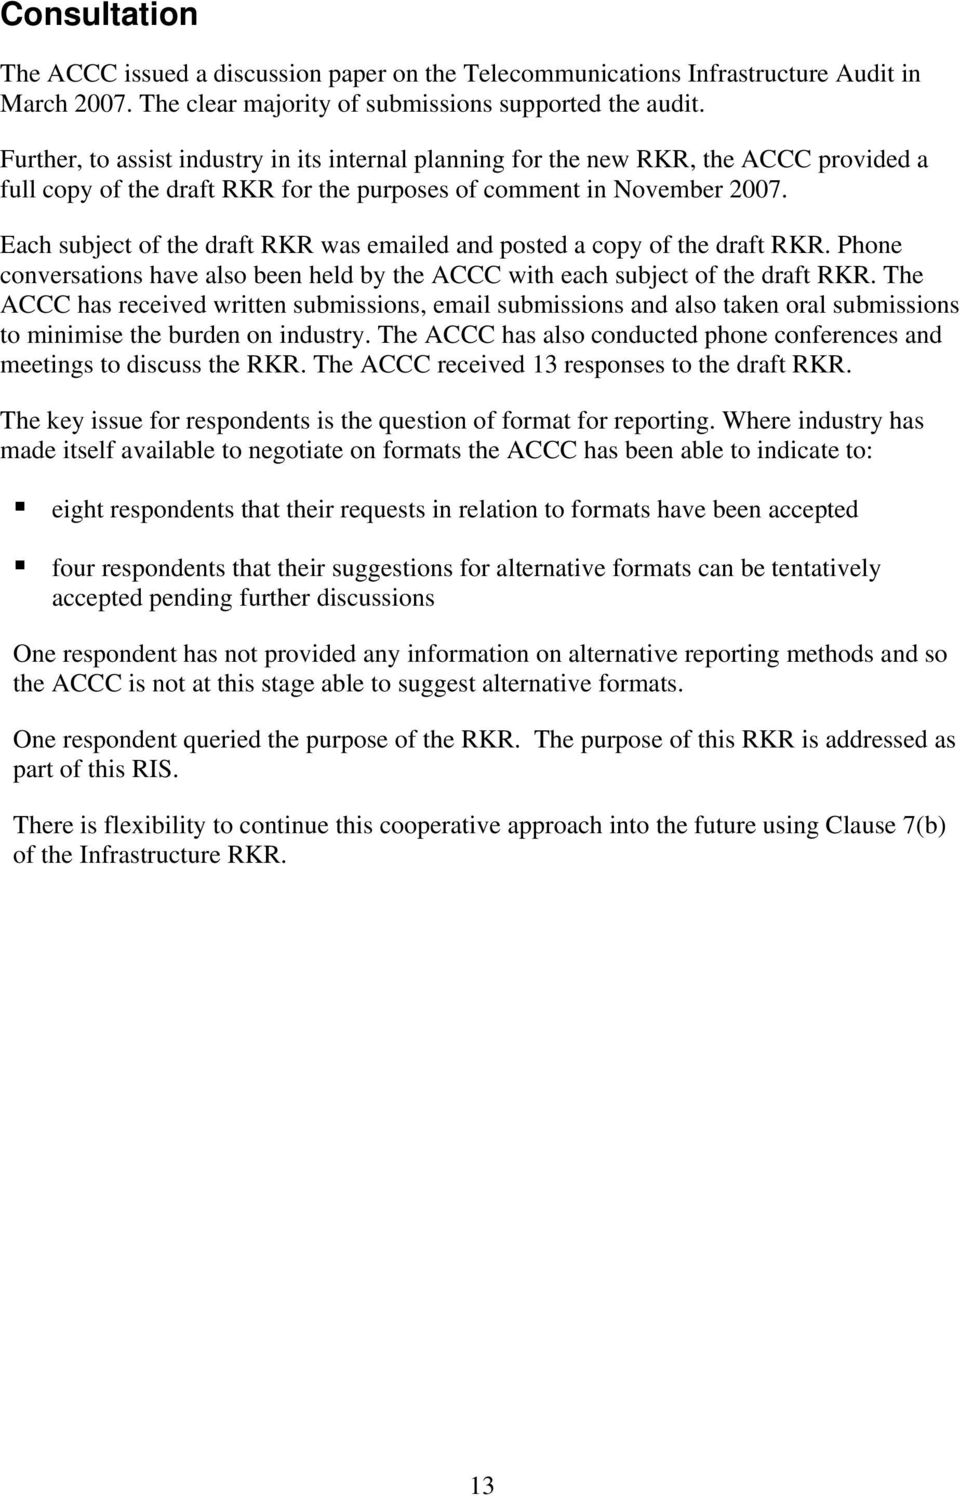 Each subject of the draft RKR was emailed and posted a copy of the draft RKR. Phone conversations have also been held by the ACCC with each subject of the draft RKR.